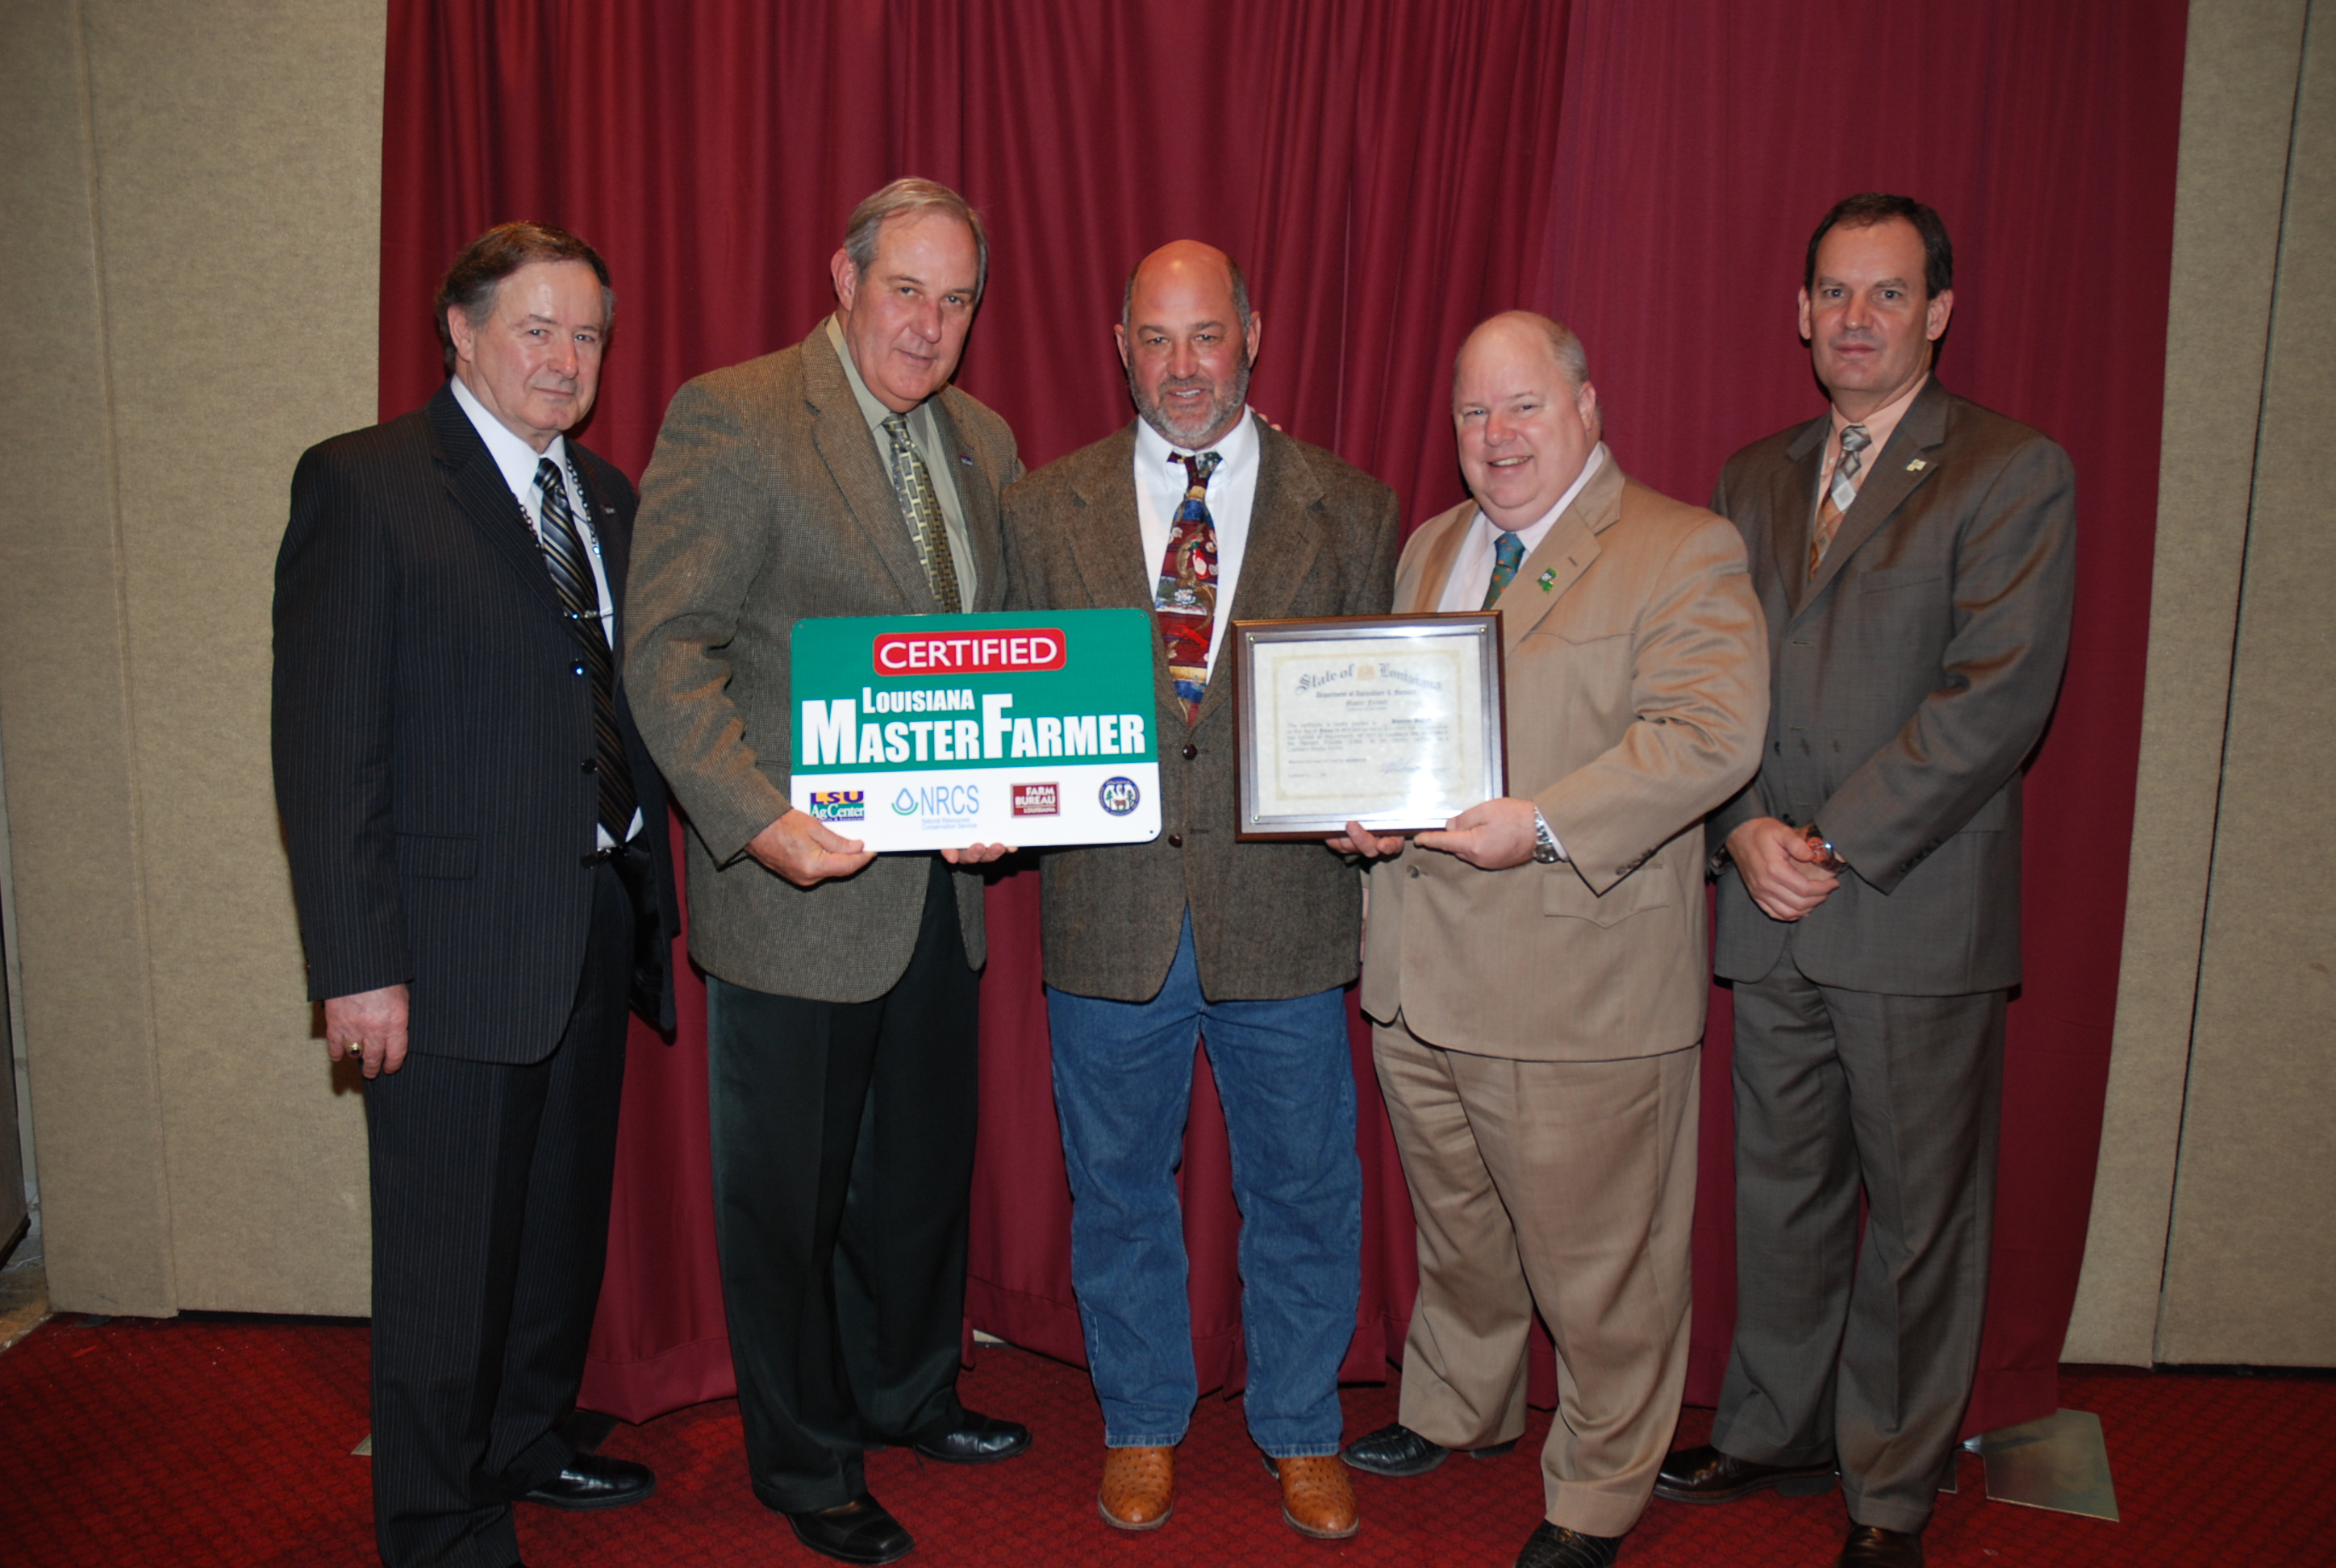 2009 Certified Master Farmers Photo Gallery I